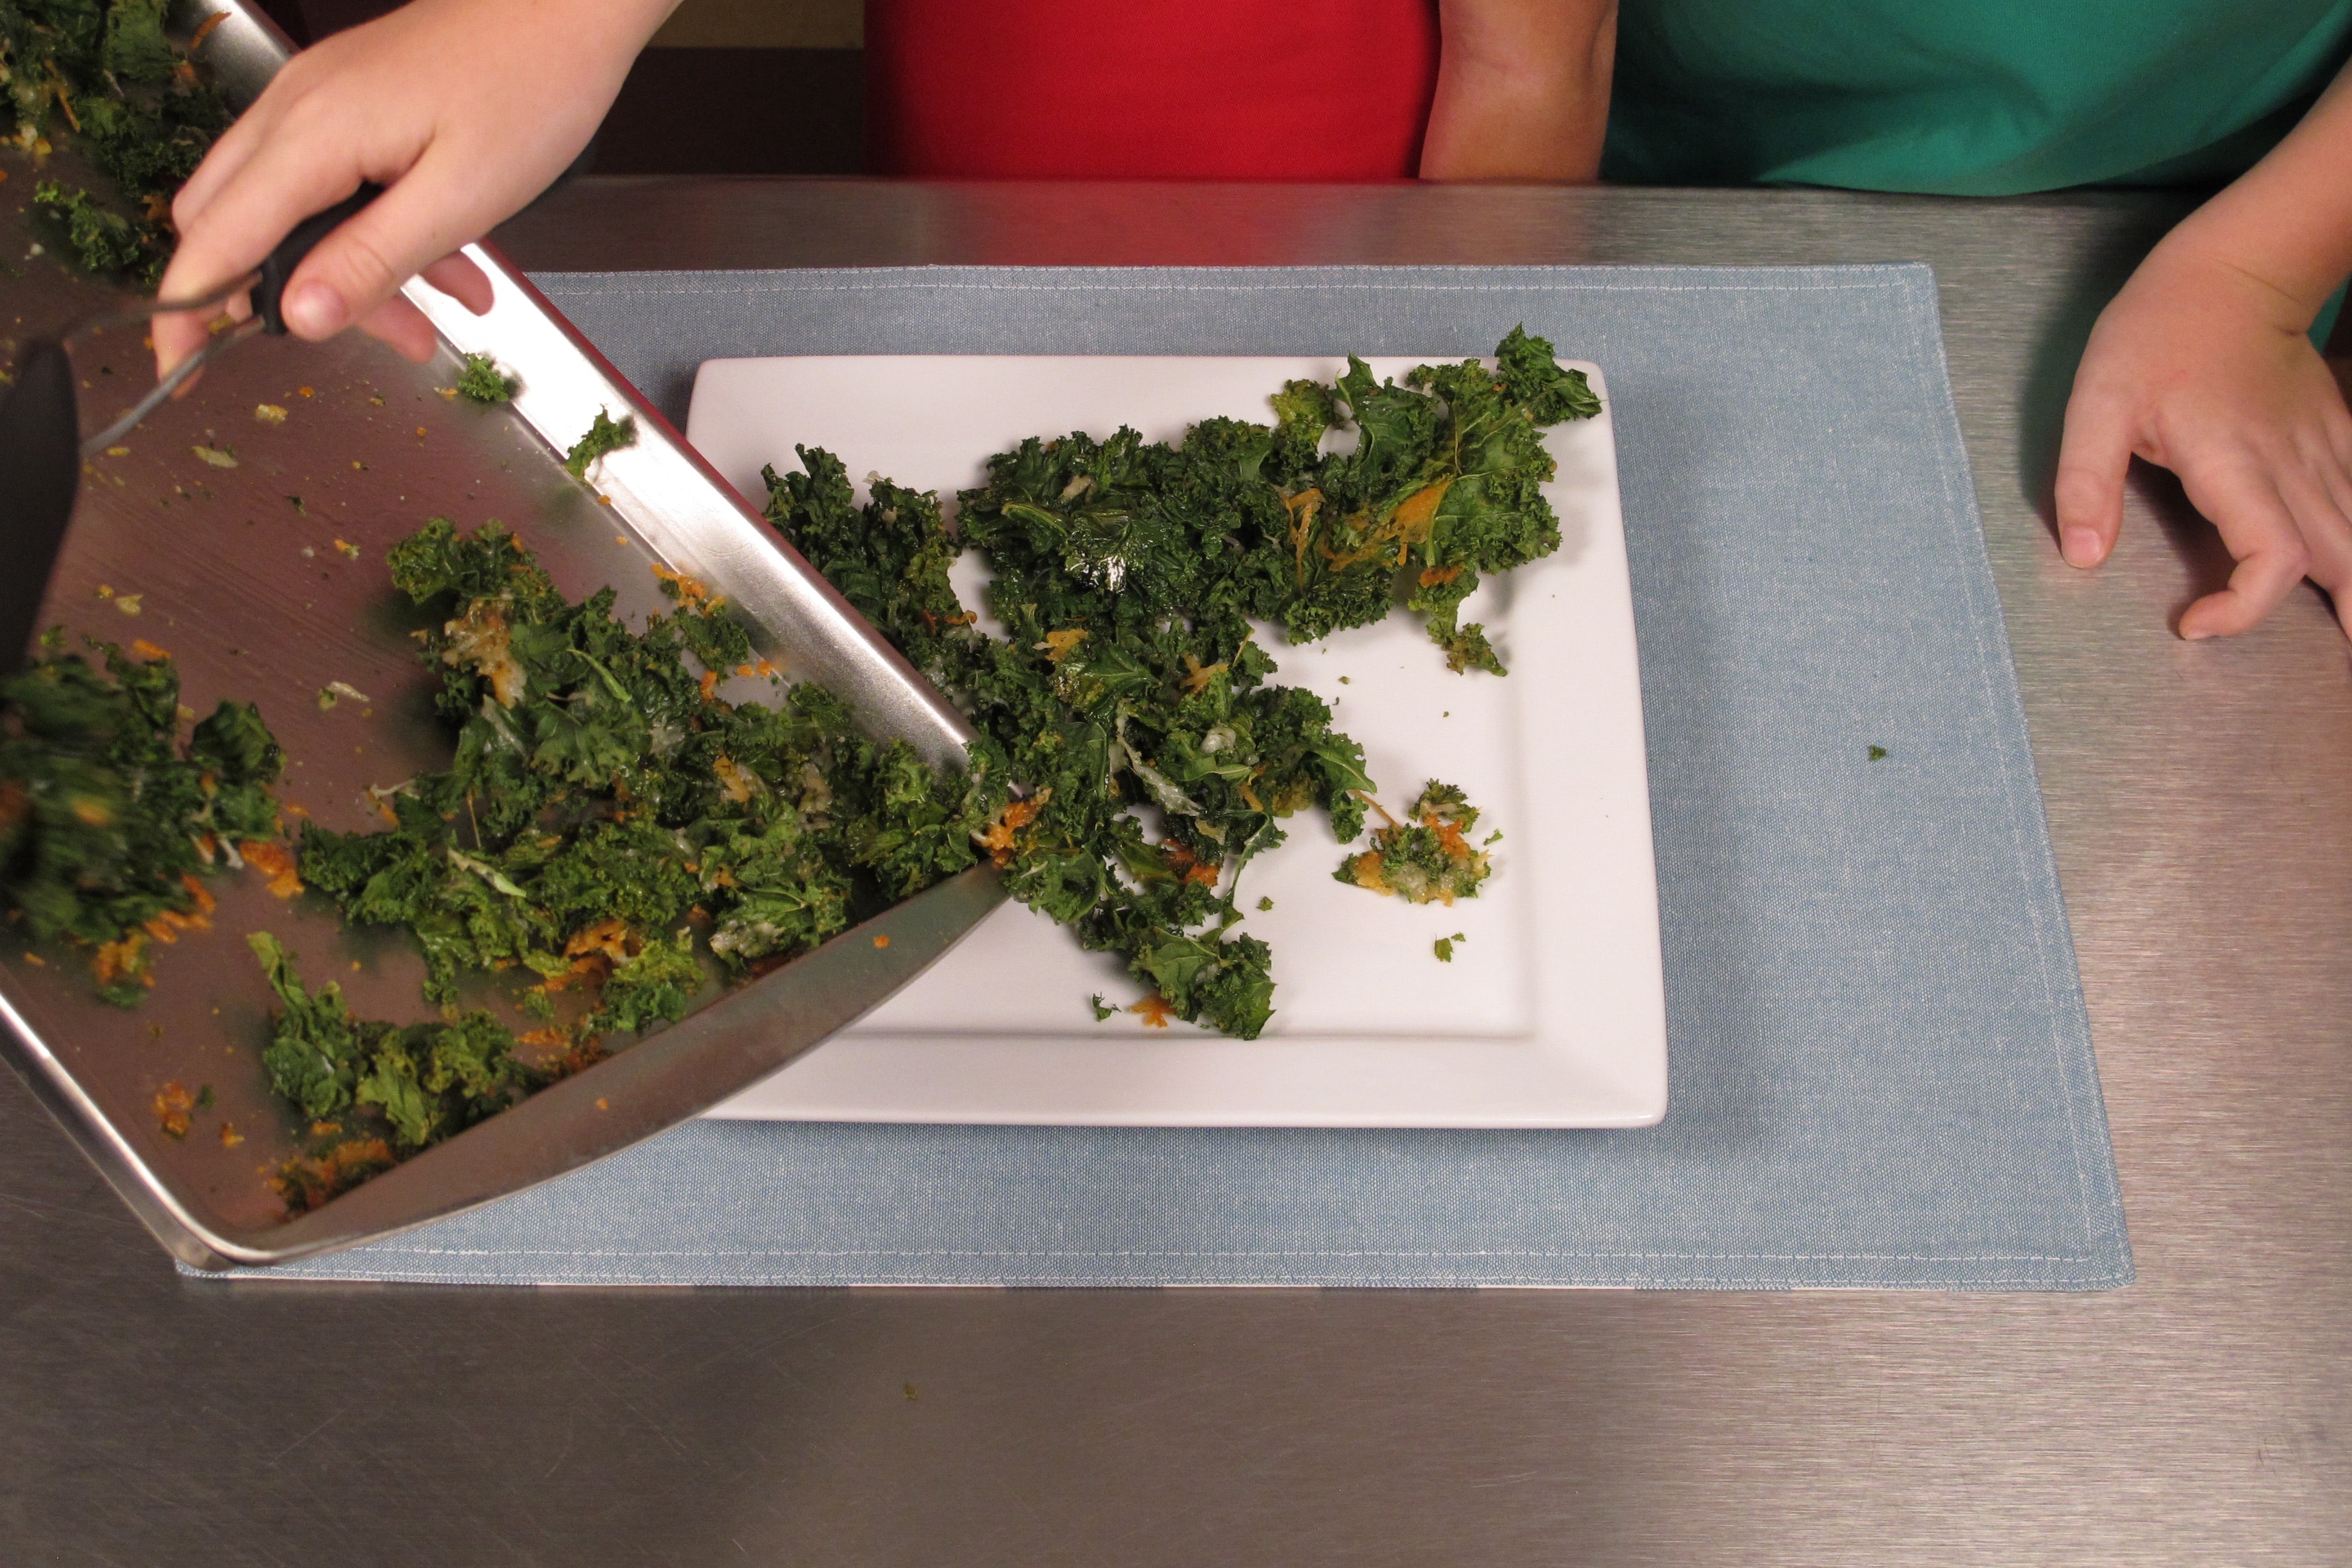 (continued) Bake at 400°F for 10–15 minutes or until kale is crisp and edges are brown but not burned.